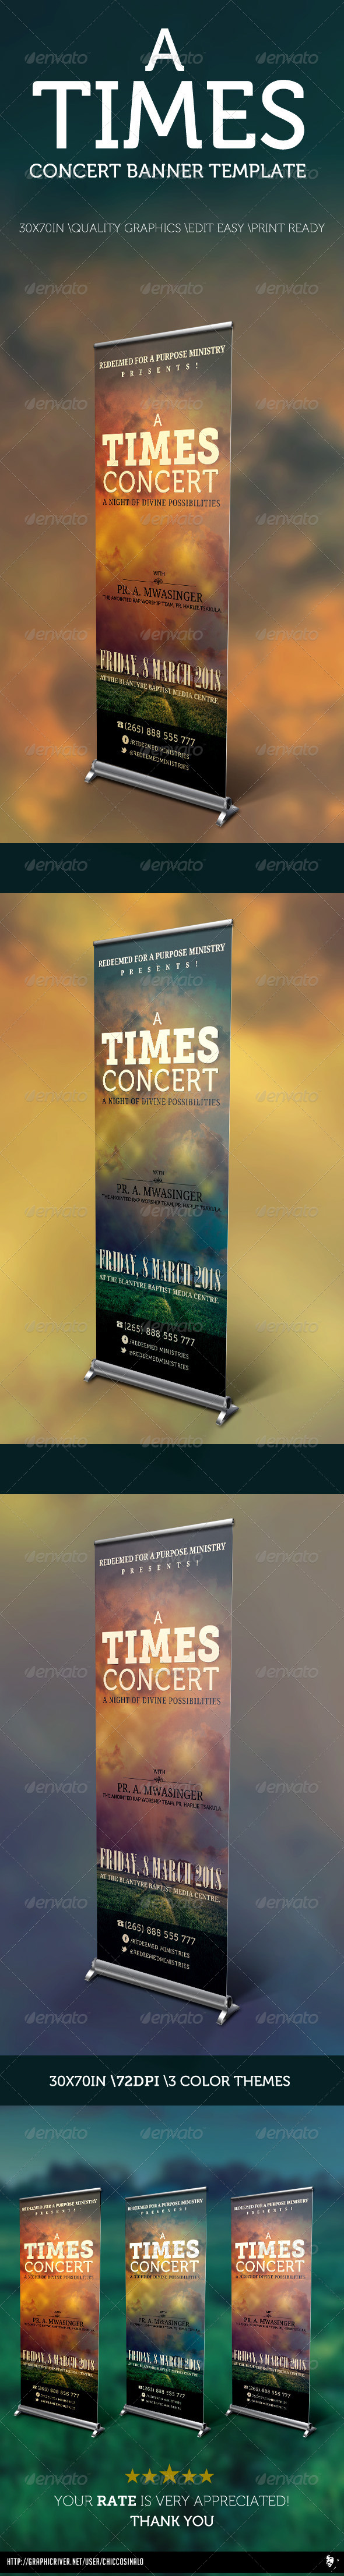 A Times Concert Banner Template - Signage Print Templates